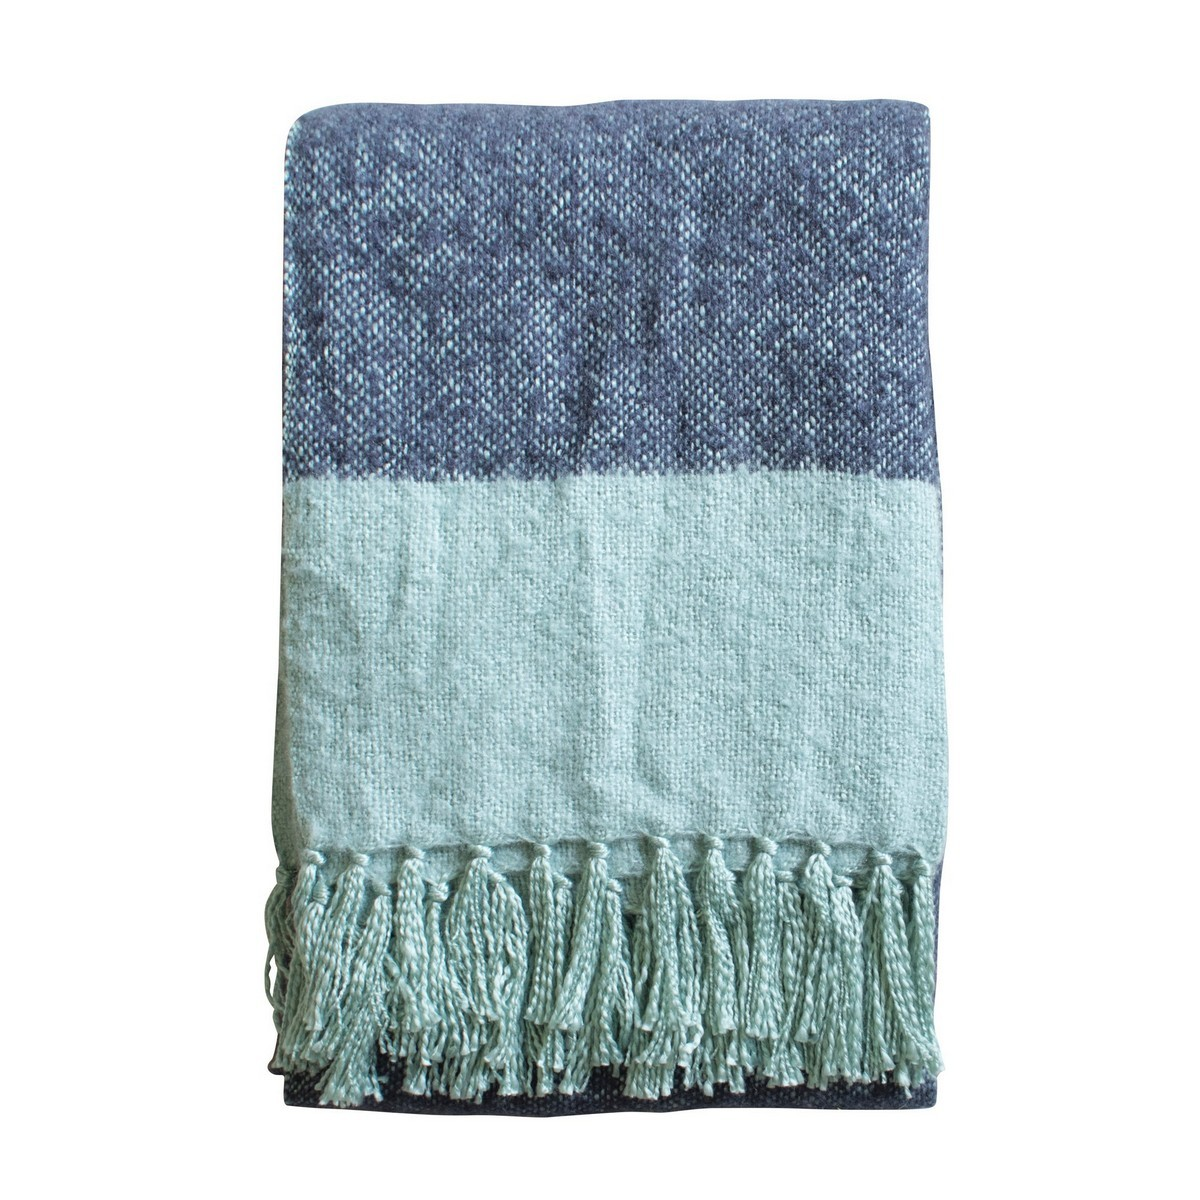 Lexden Tonal Faux Mohair Throw, Ink / Duck Egg Blue